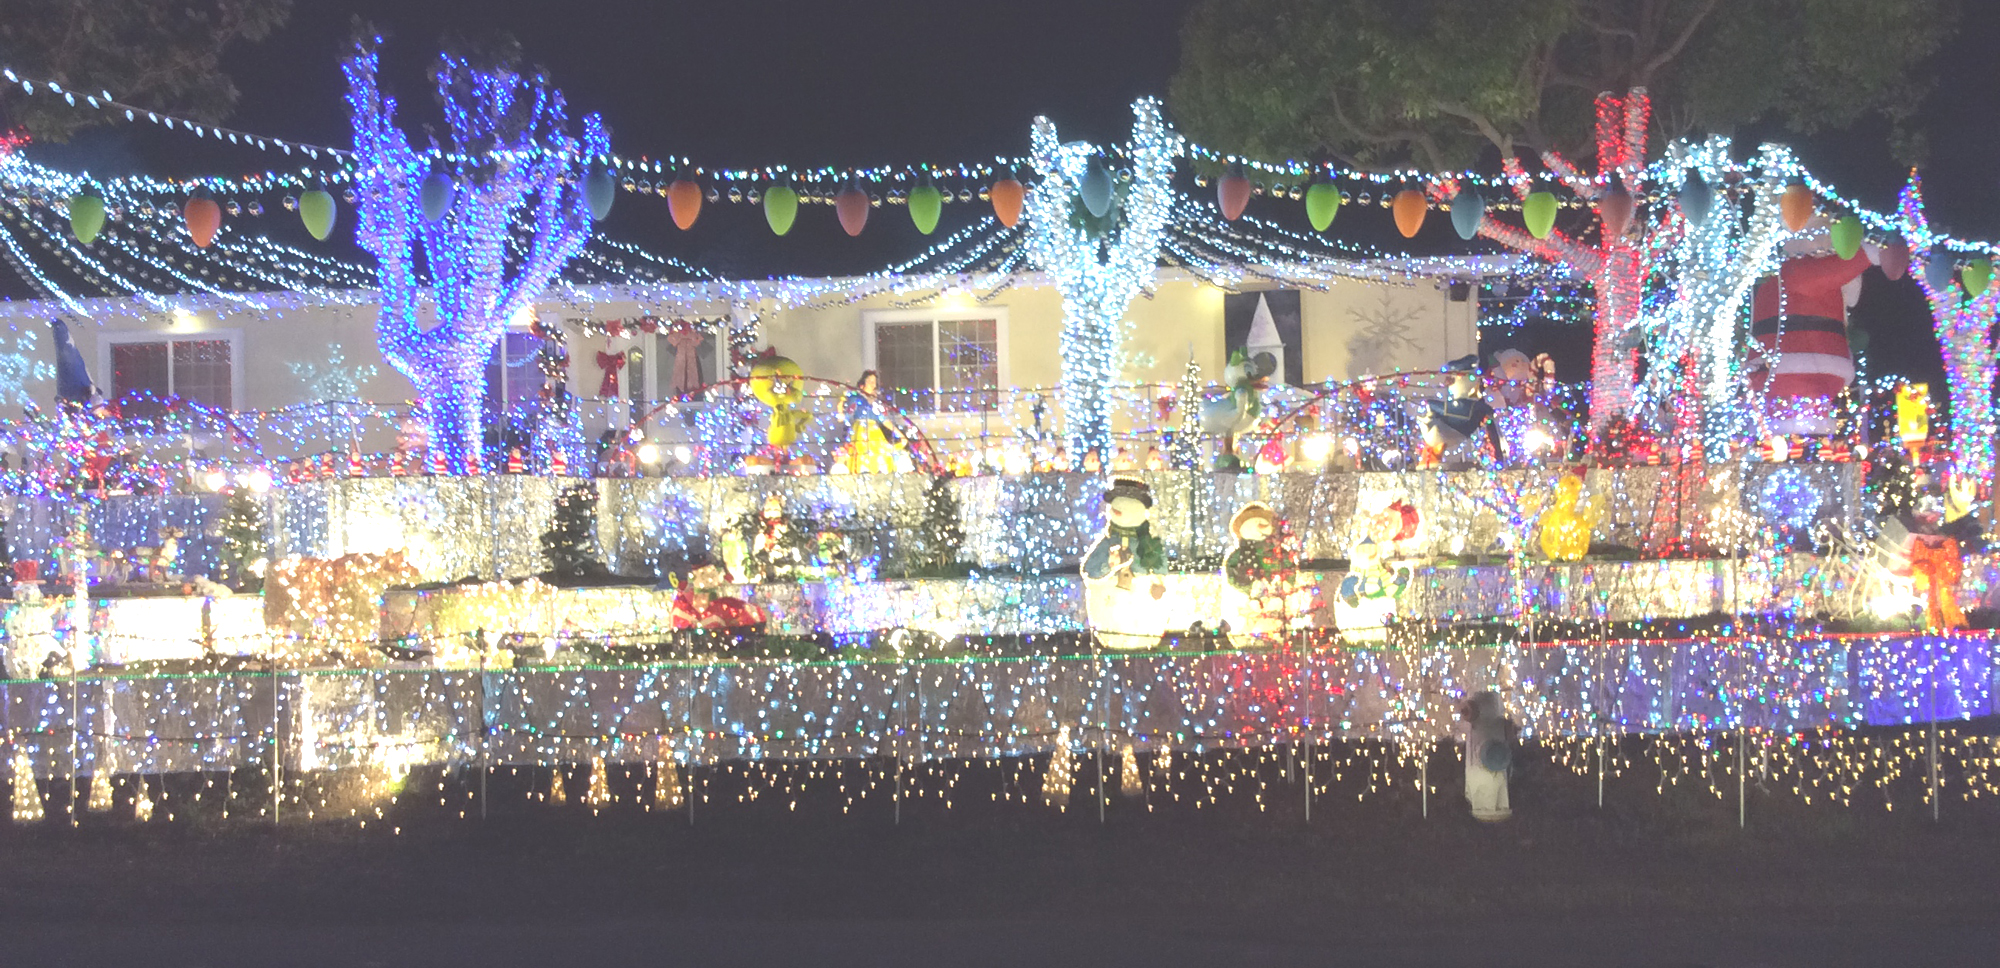 brightest house on the block